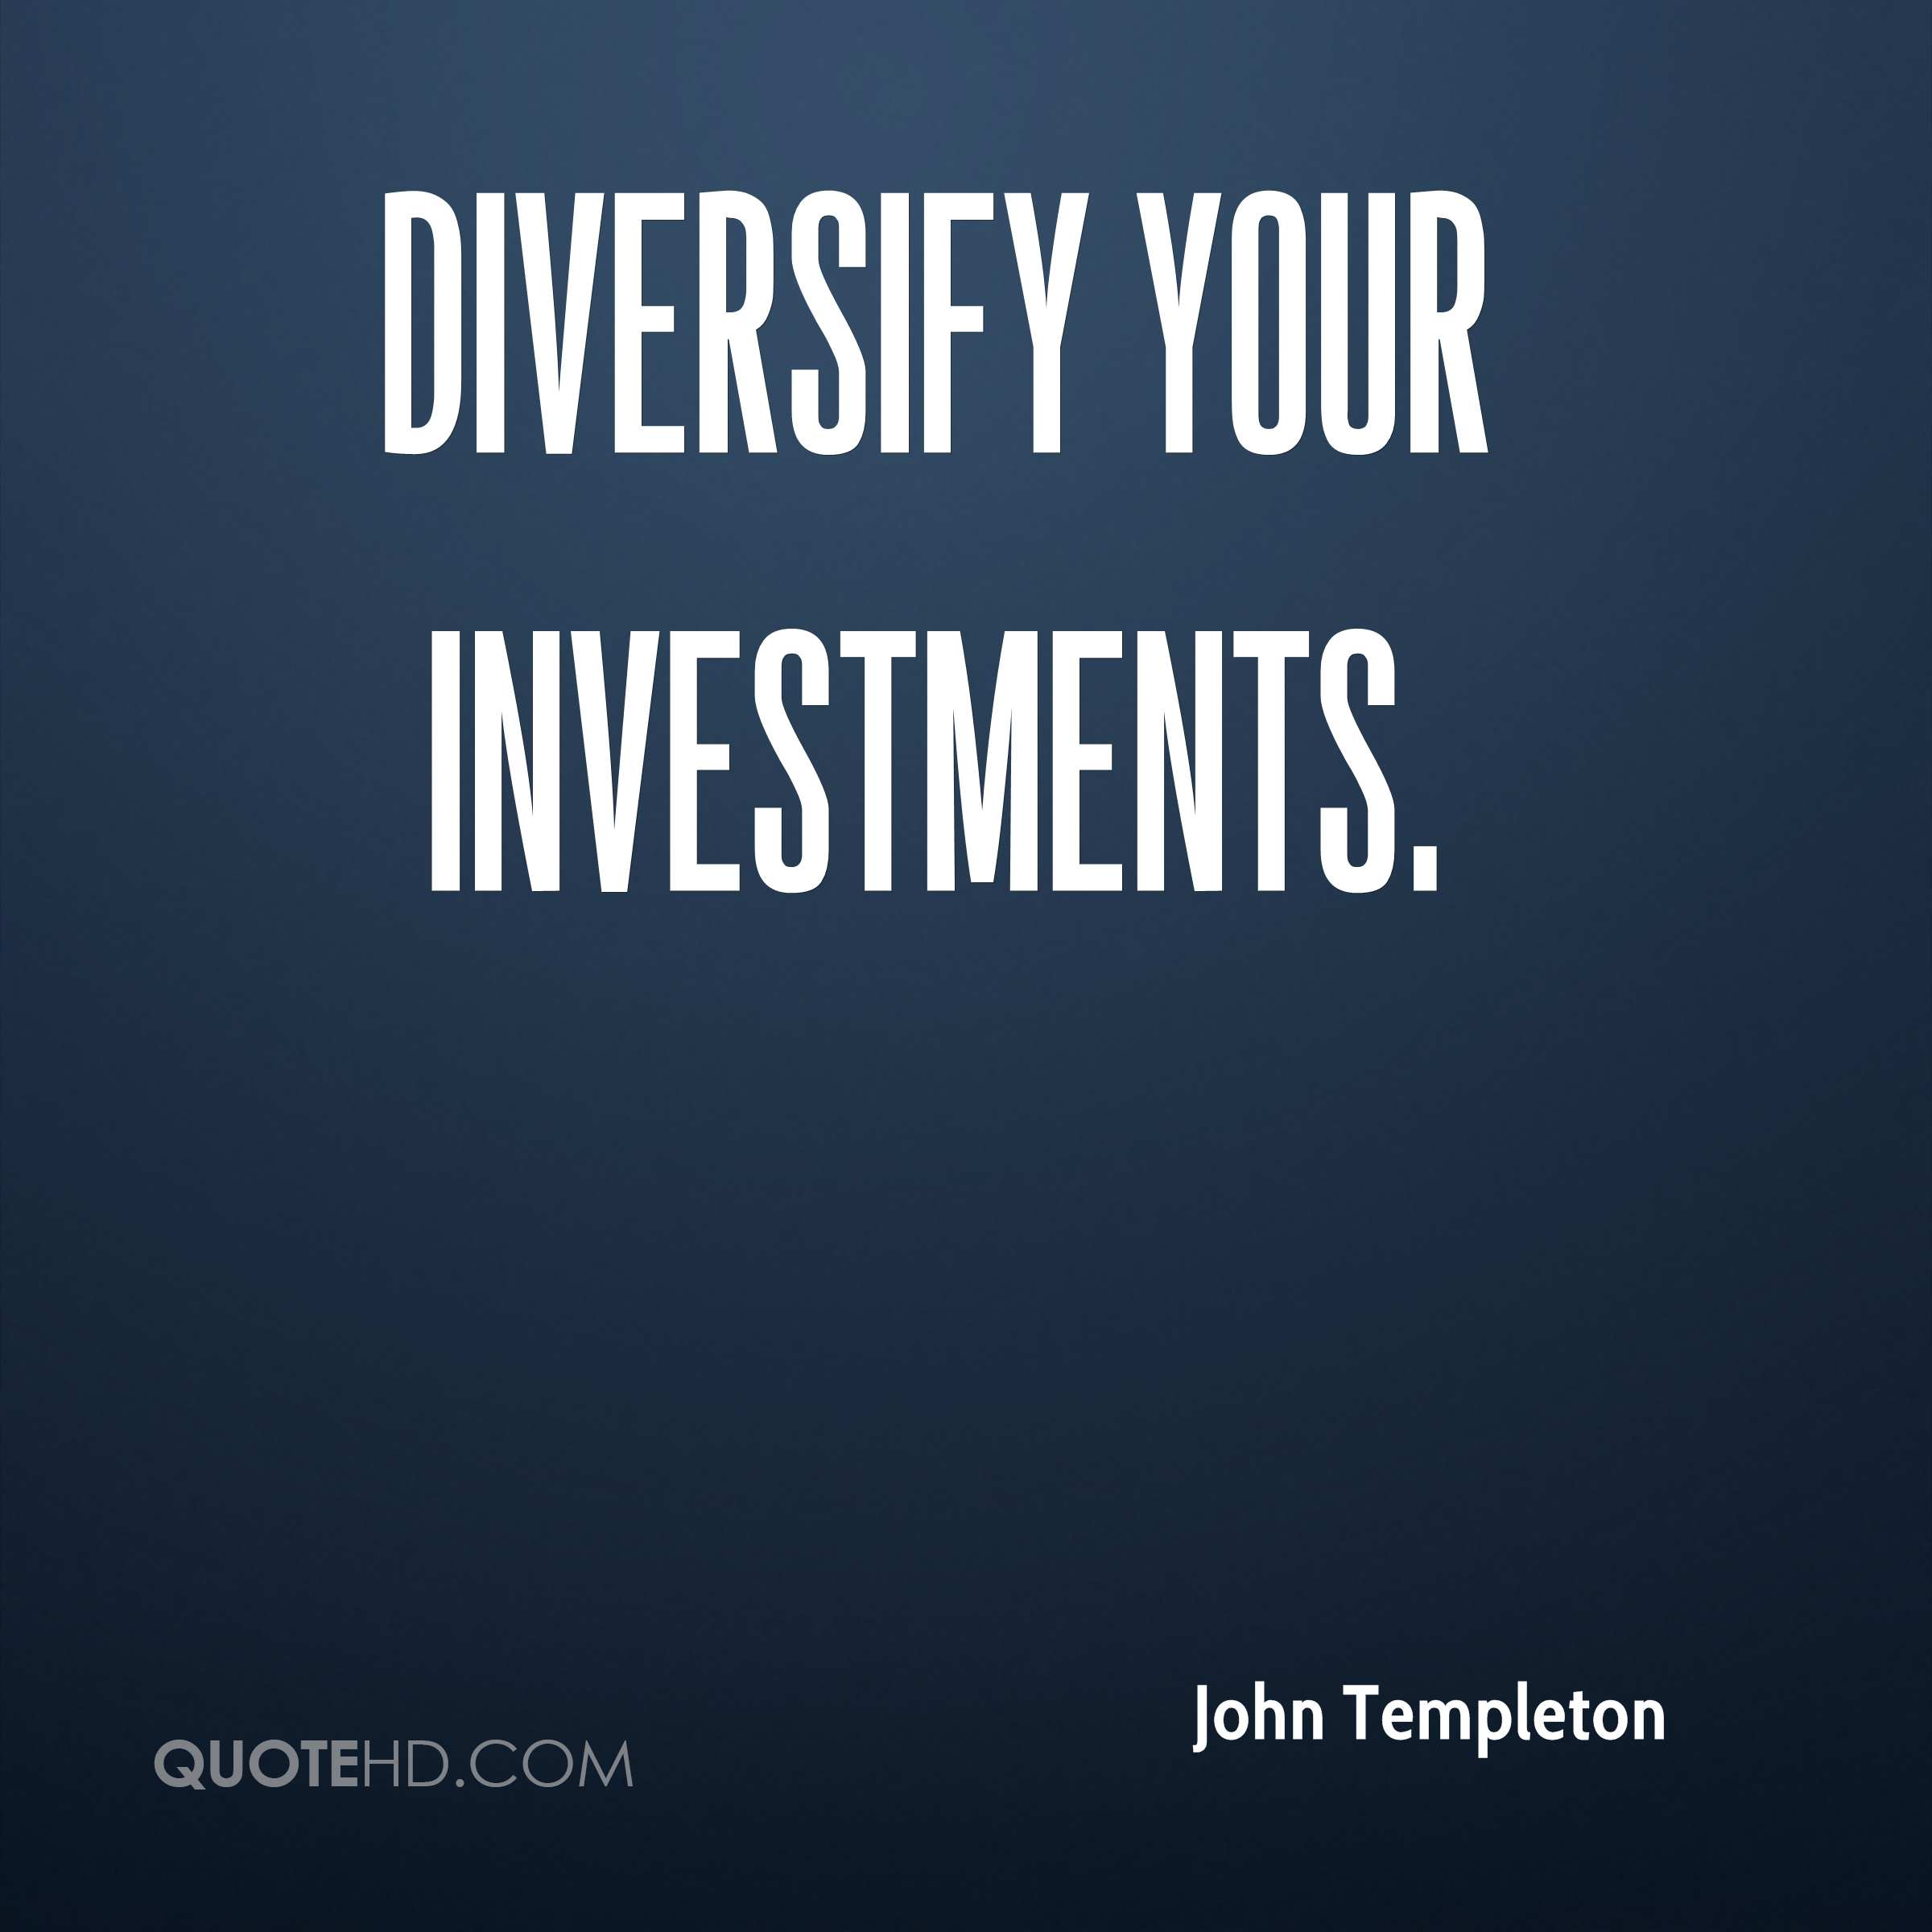 Diversify your investments.